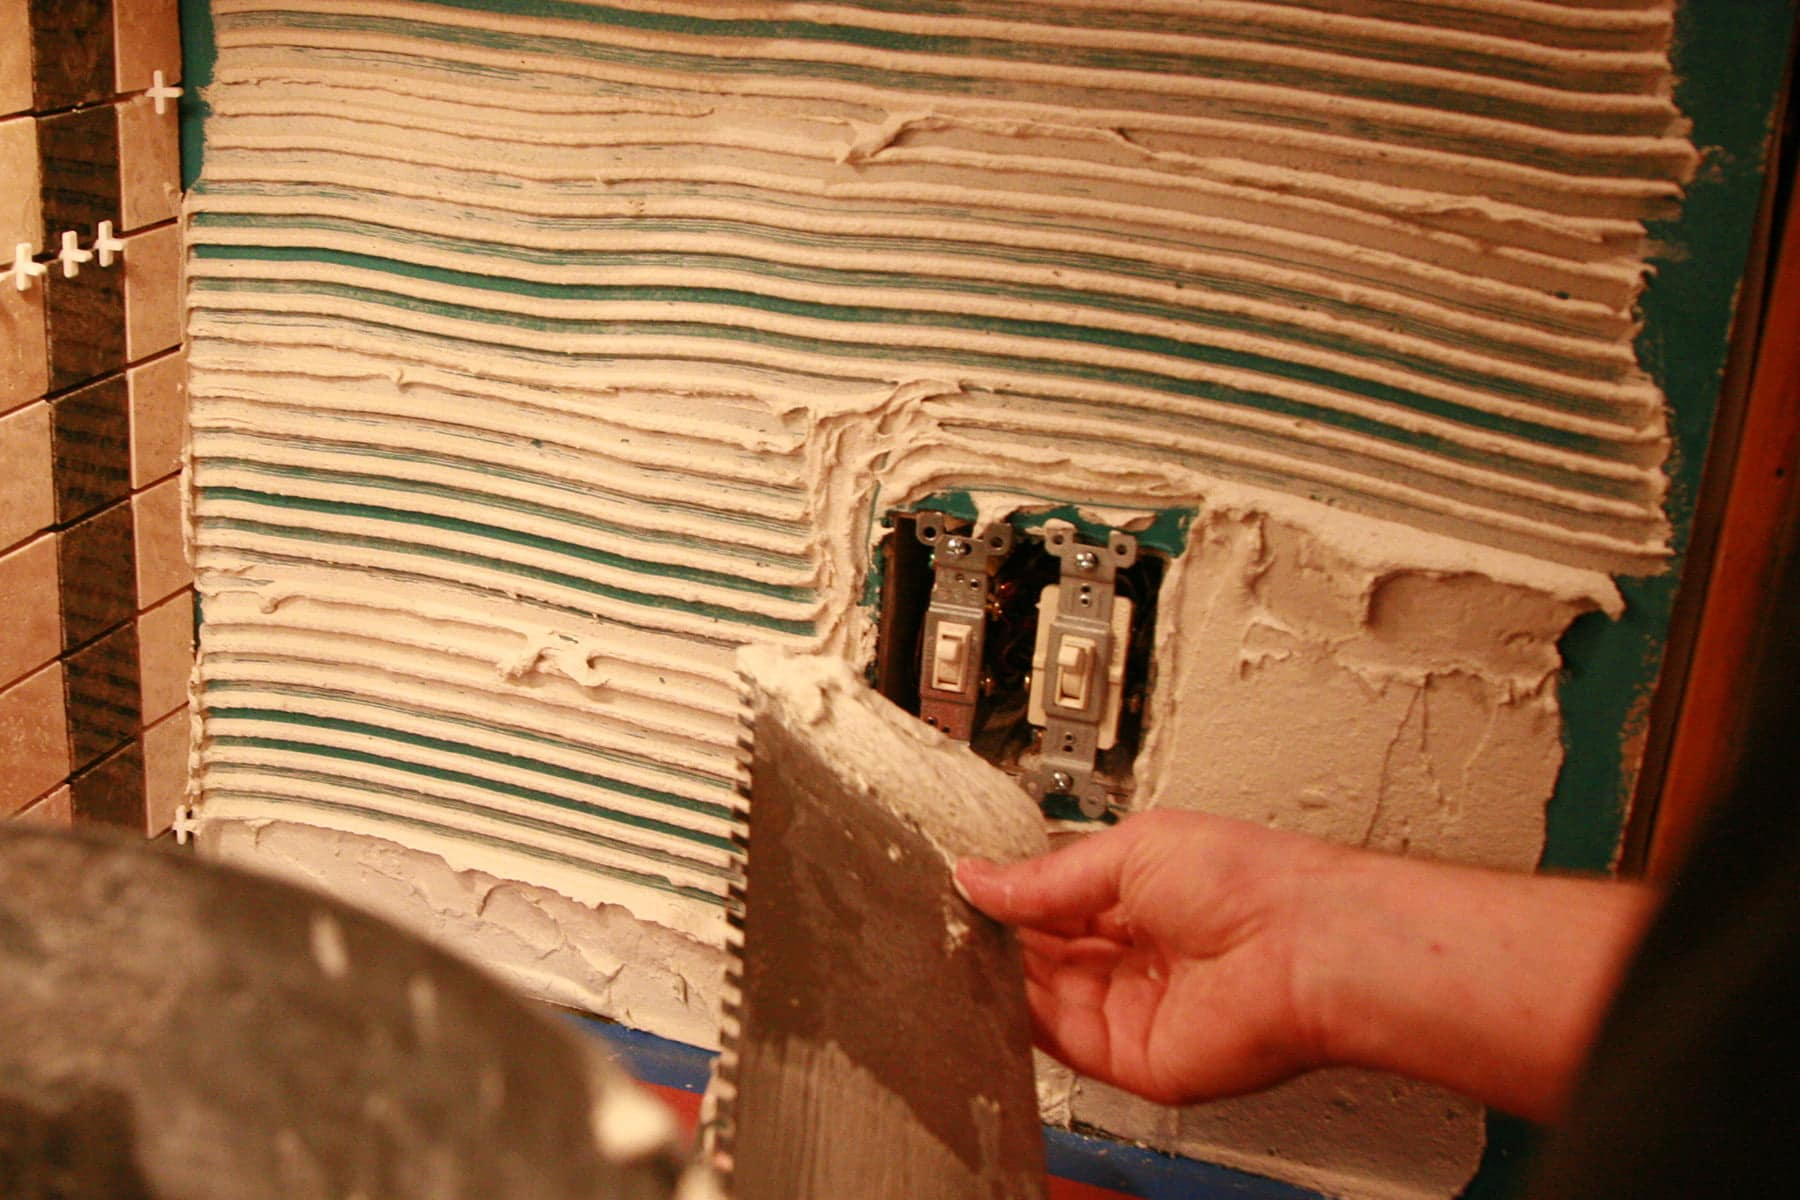 A hand applies tile adhesive to a wall with a flat metal tool.